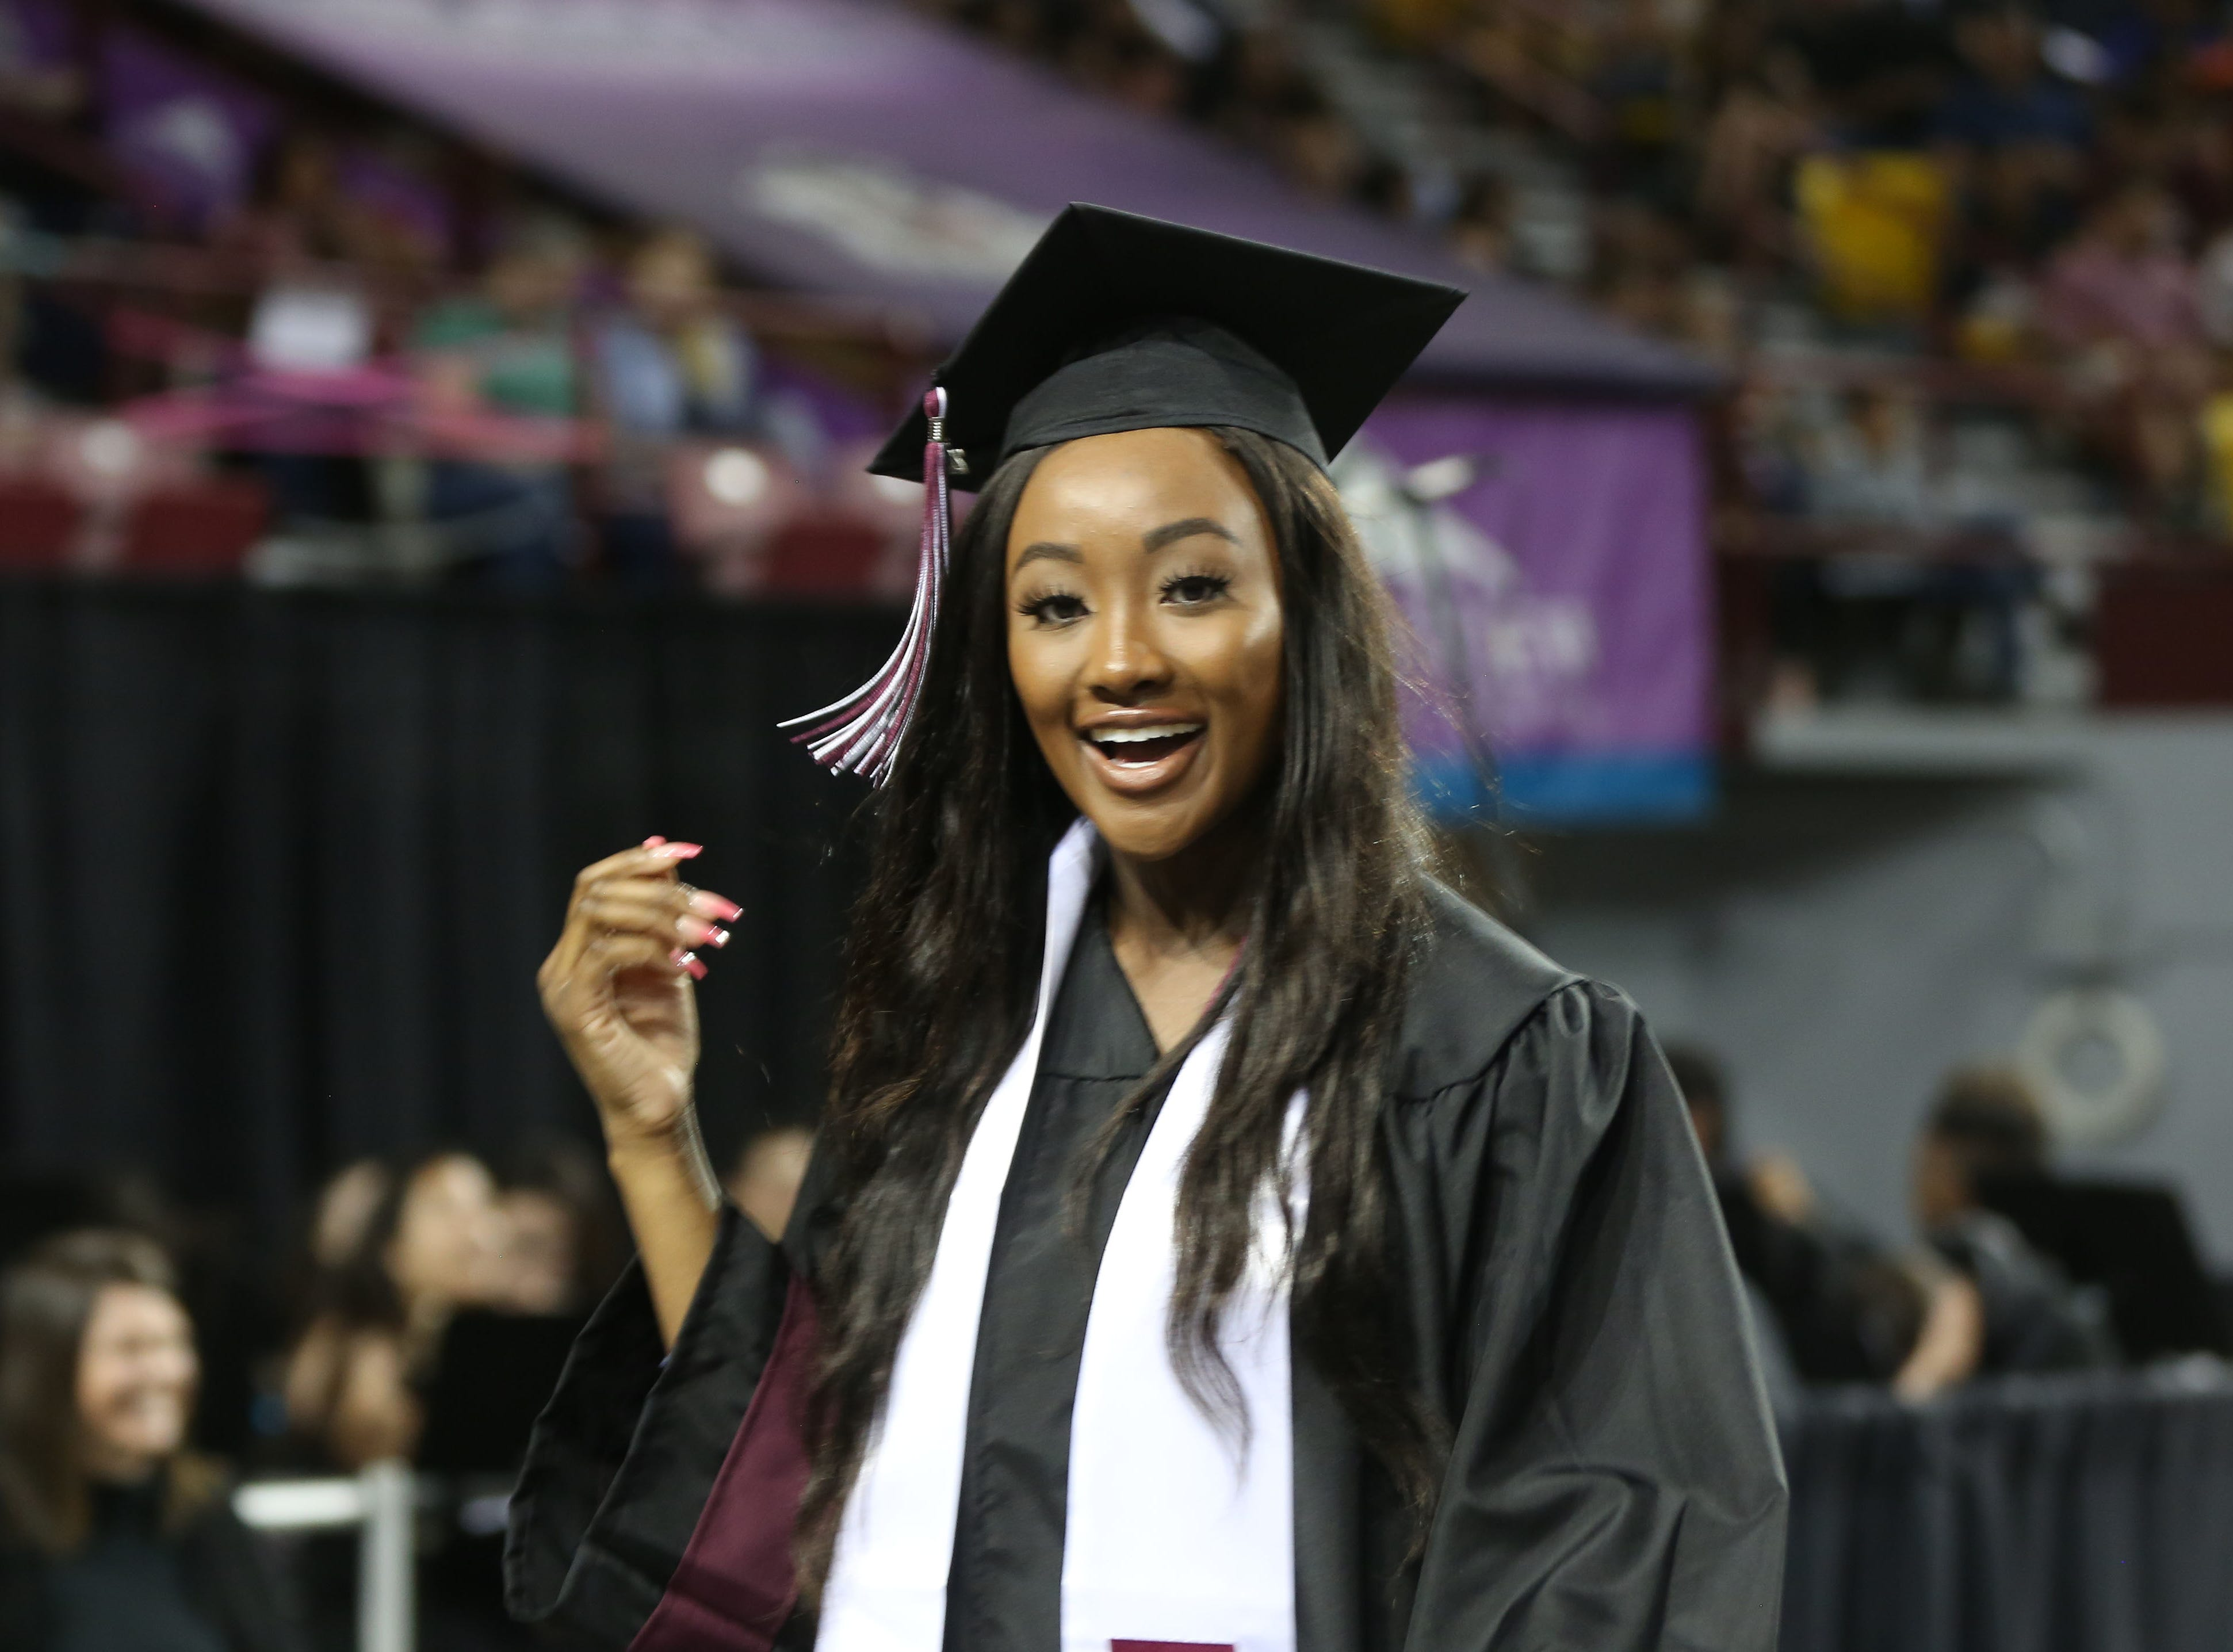 A New Mexico State University graduate smiles after receiving her degree at one of two commencement ceremonies hosted by the school, Saturday May 11, 2019.